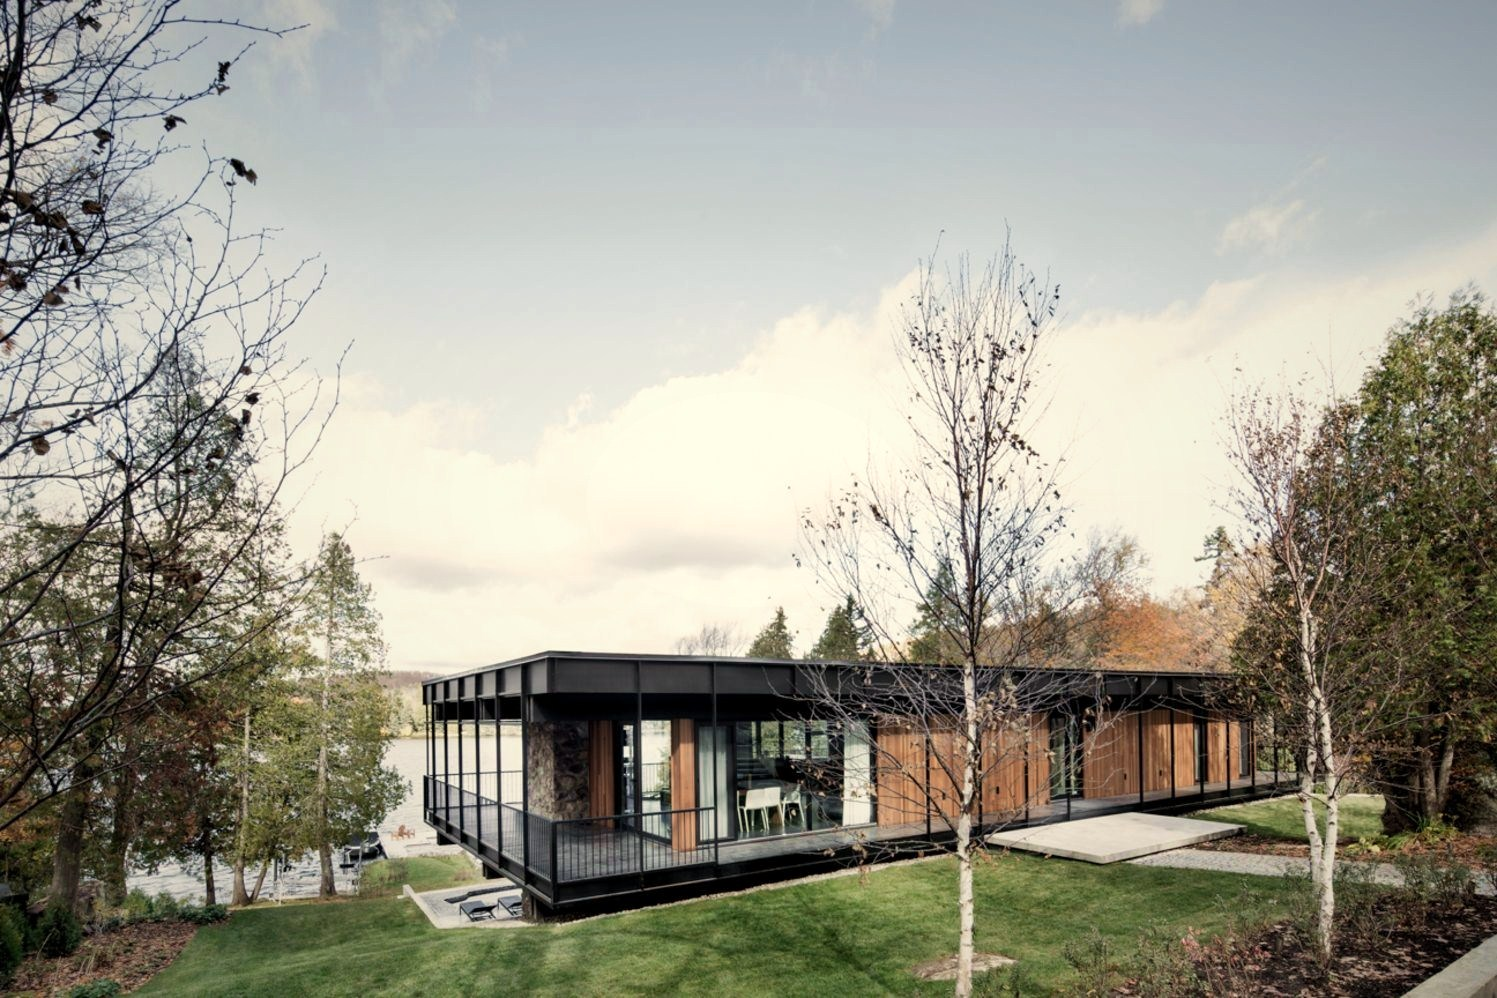 https://elonahome.com/wp-content/uploads/2020/07/Flat-roof-house-built-in-slooping-land-showing-beautiful-combination-of-nature-and-elegant-architeture-concept-Le-Phénix.jpg